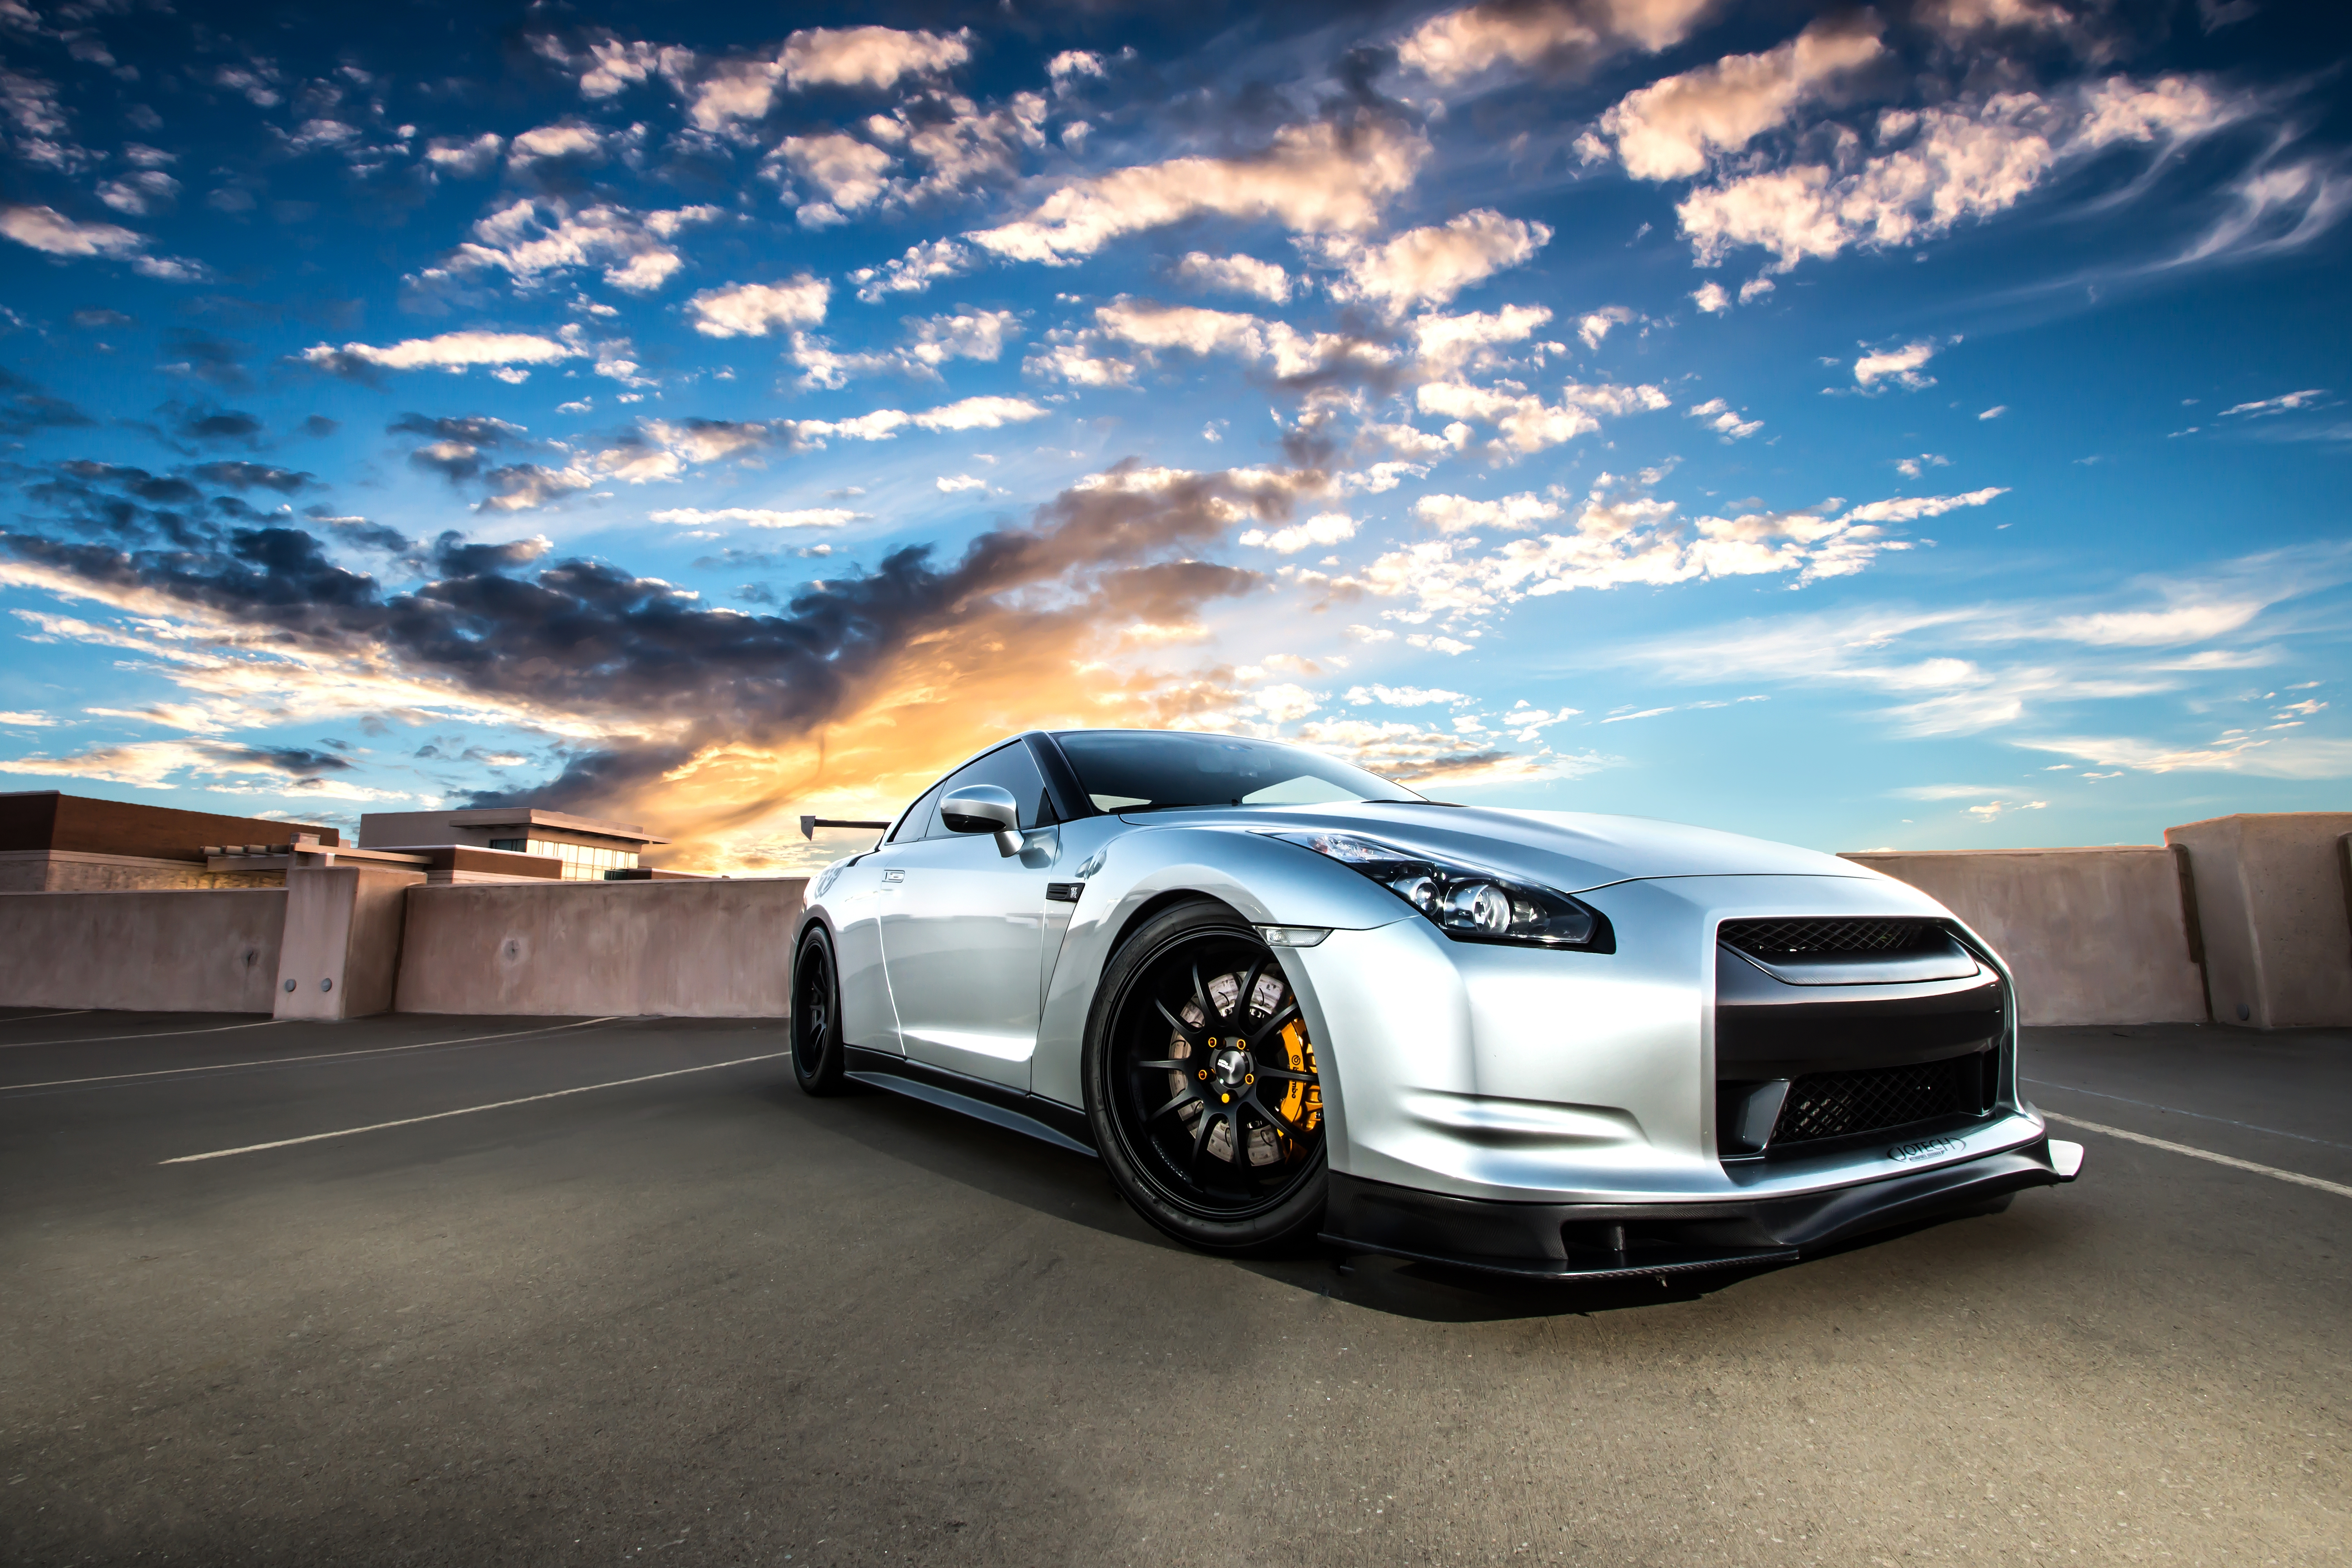 195 Nissan Gt R Hd Wallpapers Background Images Wallpaper Abyss